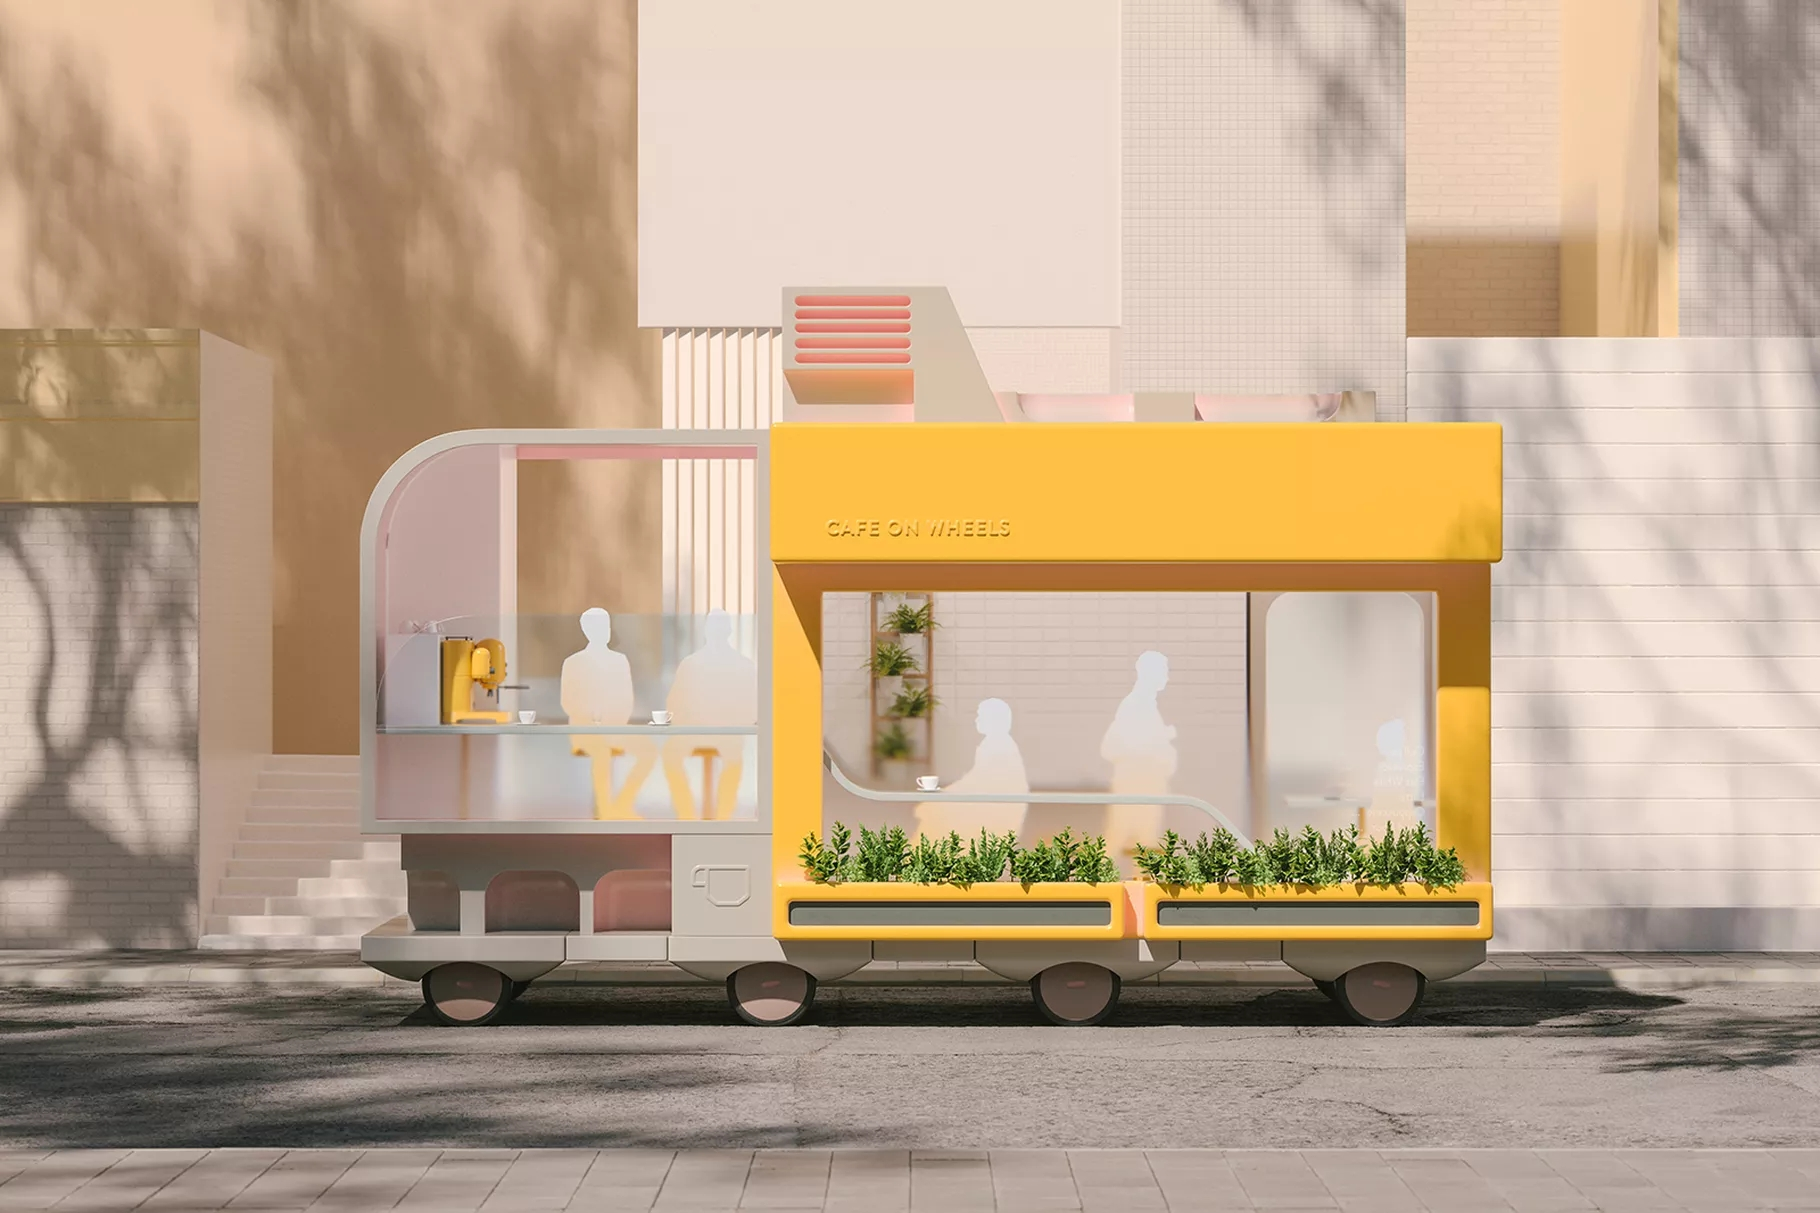 Space_10_Ikea_Autonomous_Vehicle_Cafe_Cam_01.0.jpg